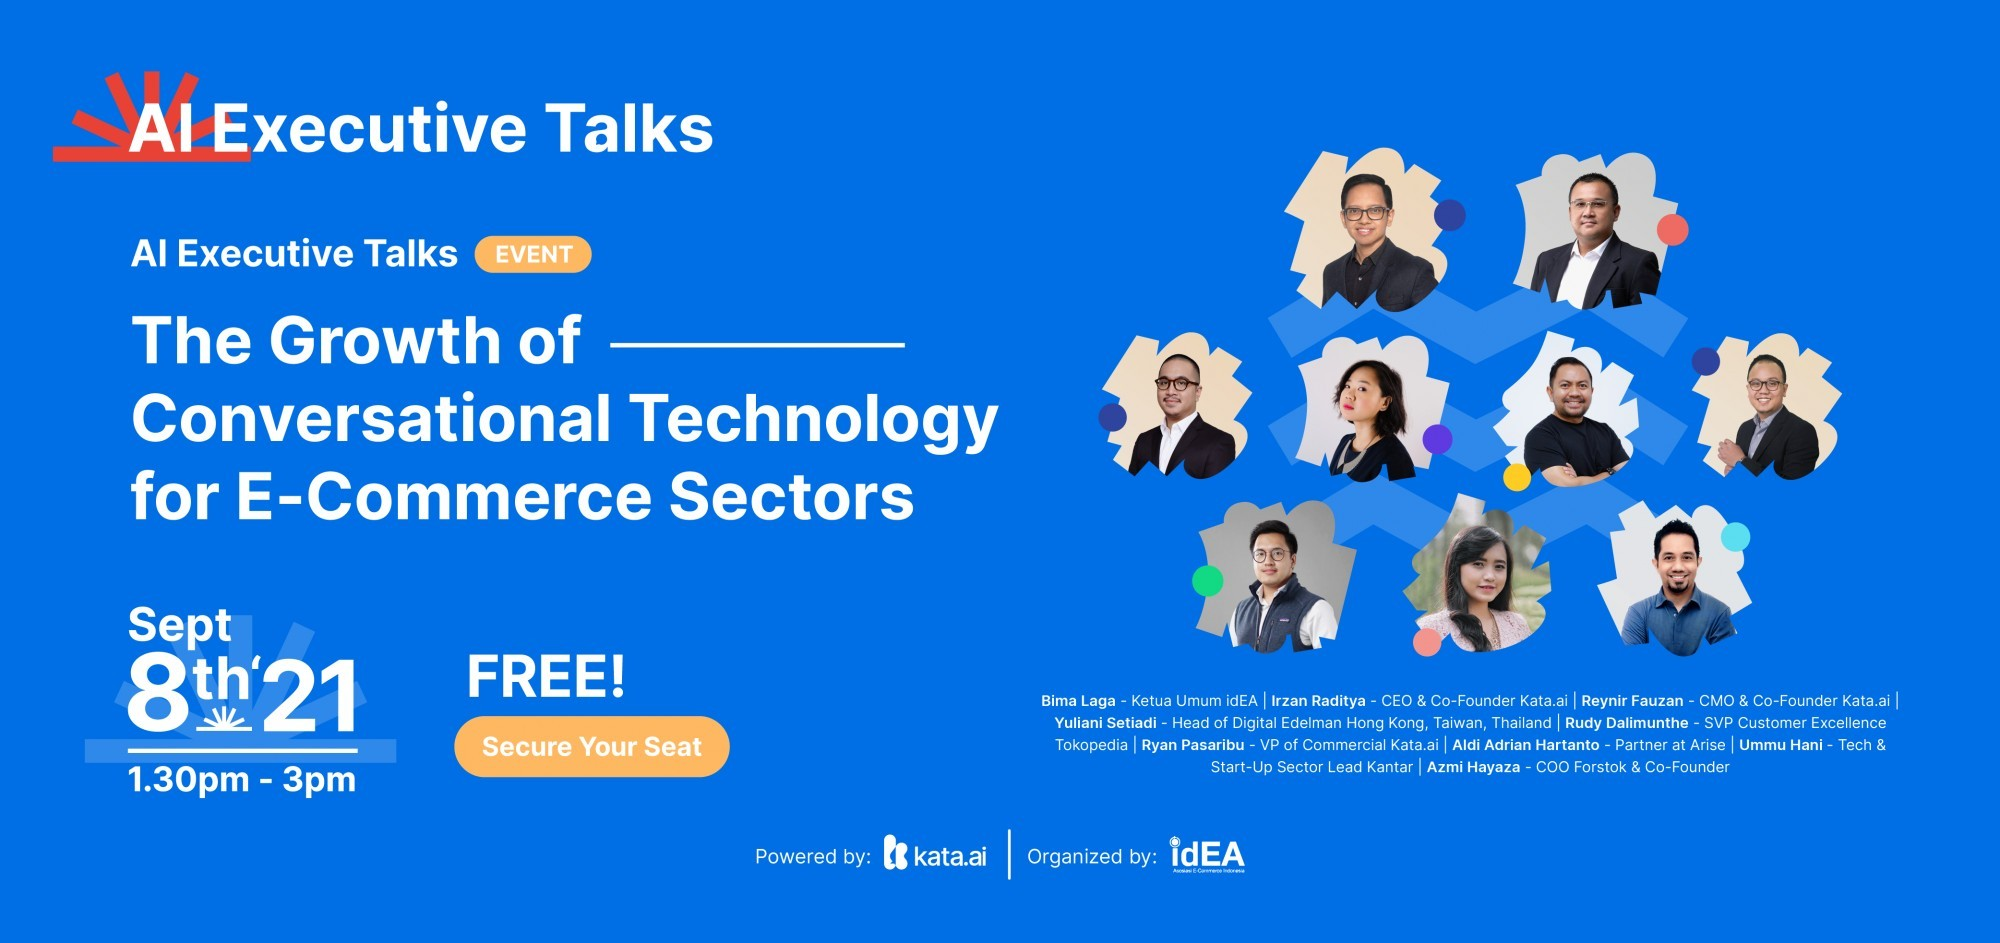 AI Executive Talks: The Growth of Conversational Technology for E-Commerce Sectors